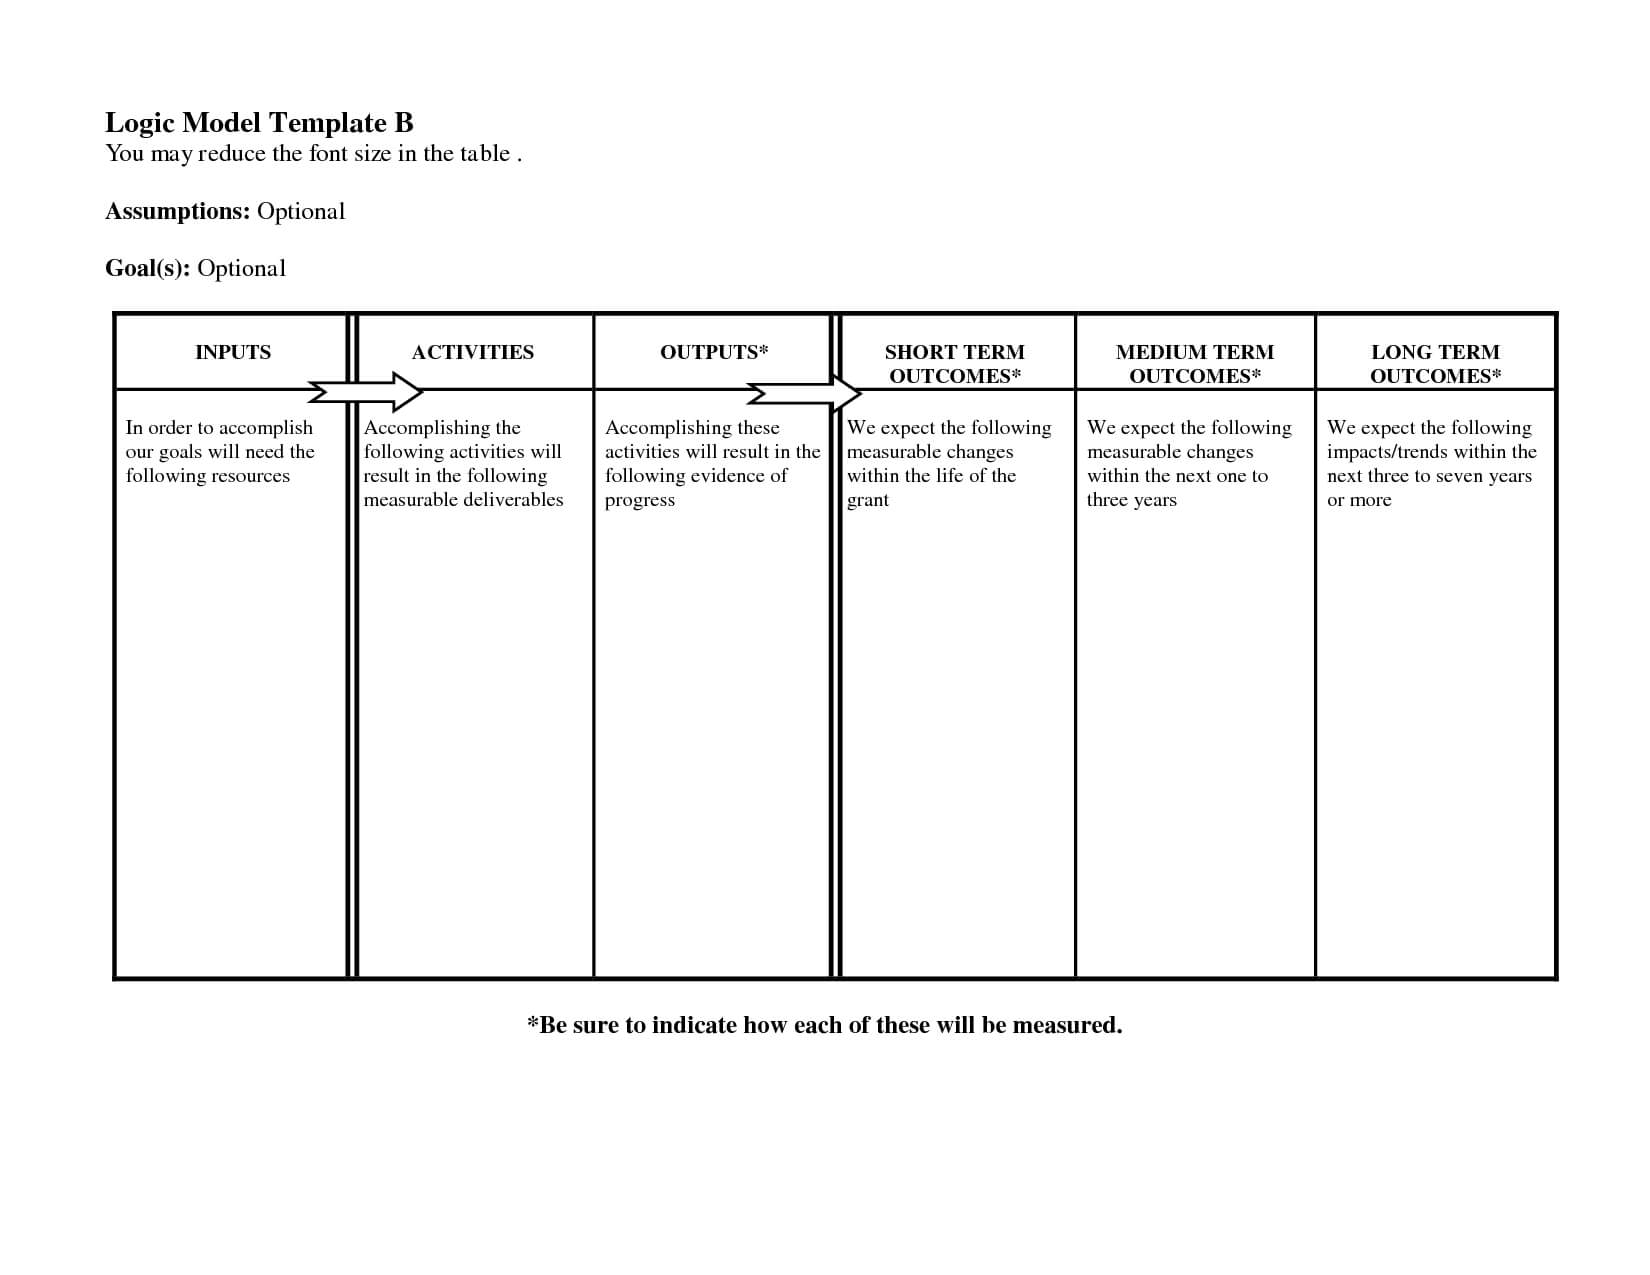 Free Logic Templates Download ] - Of Social Media Marketing Inside Logic Model Template Word